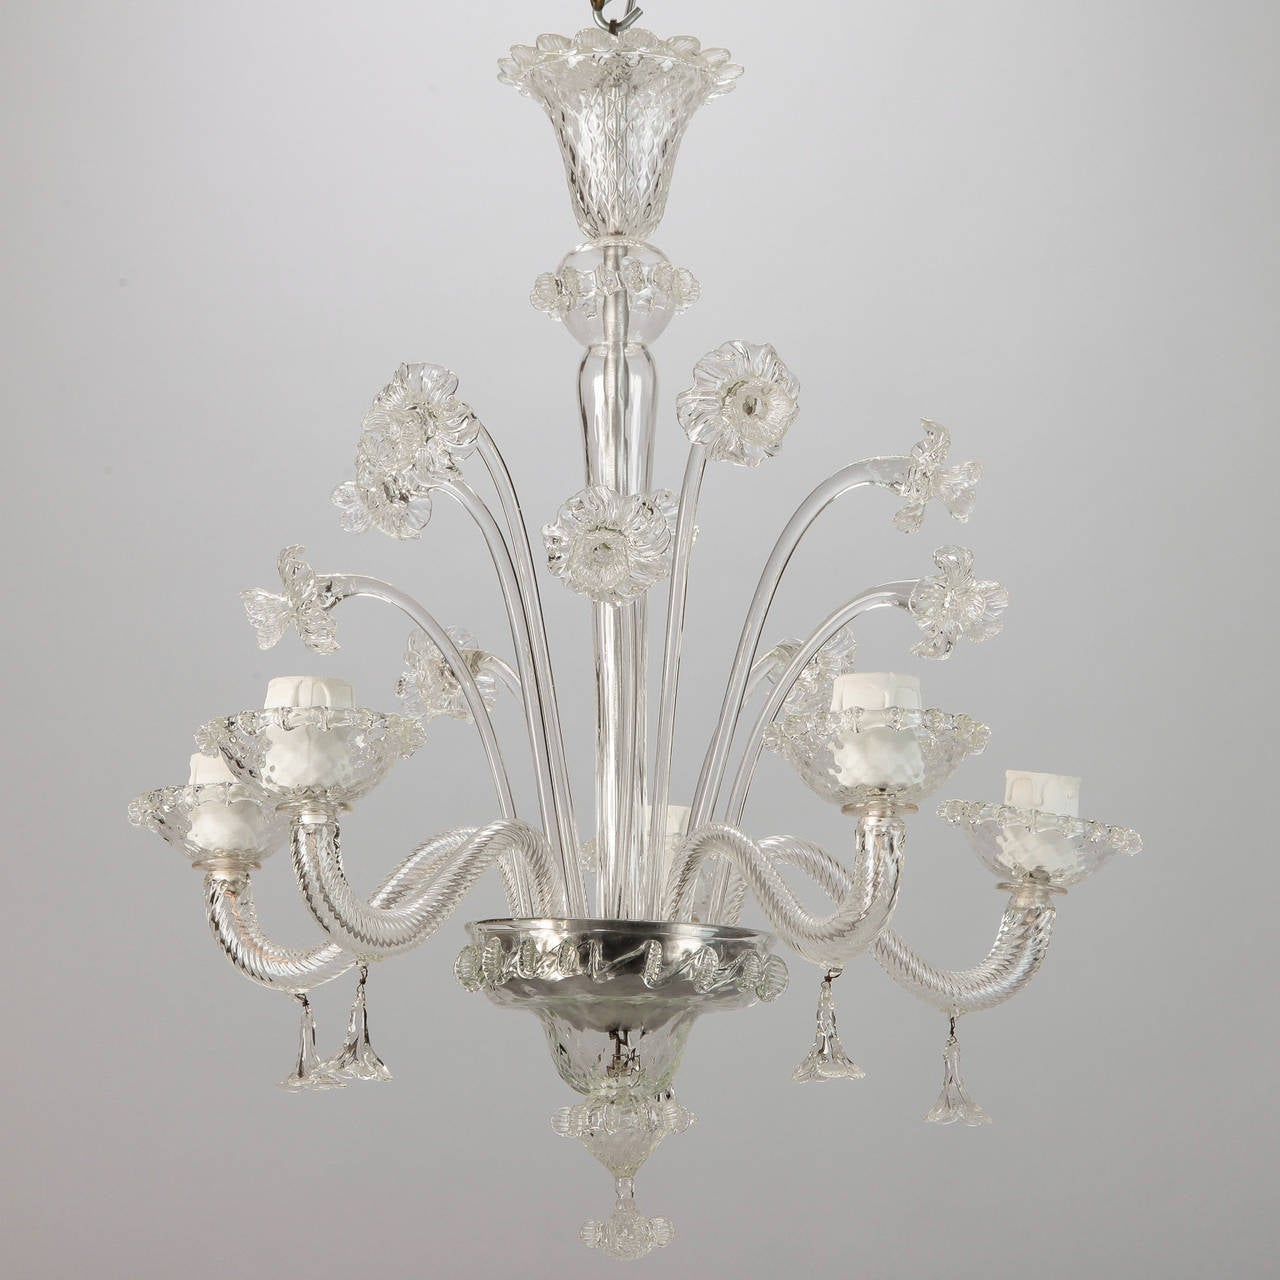 Venetian Five Light Clear Glass Daffodil Chandelier For Sale At 1stdibs Electrical Wiring Fixtures With Several Handcrafted Large Daffodils And Candle Style Lights Circa 1900